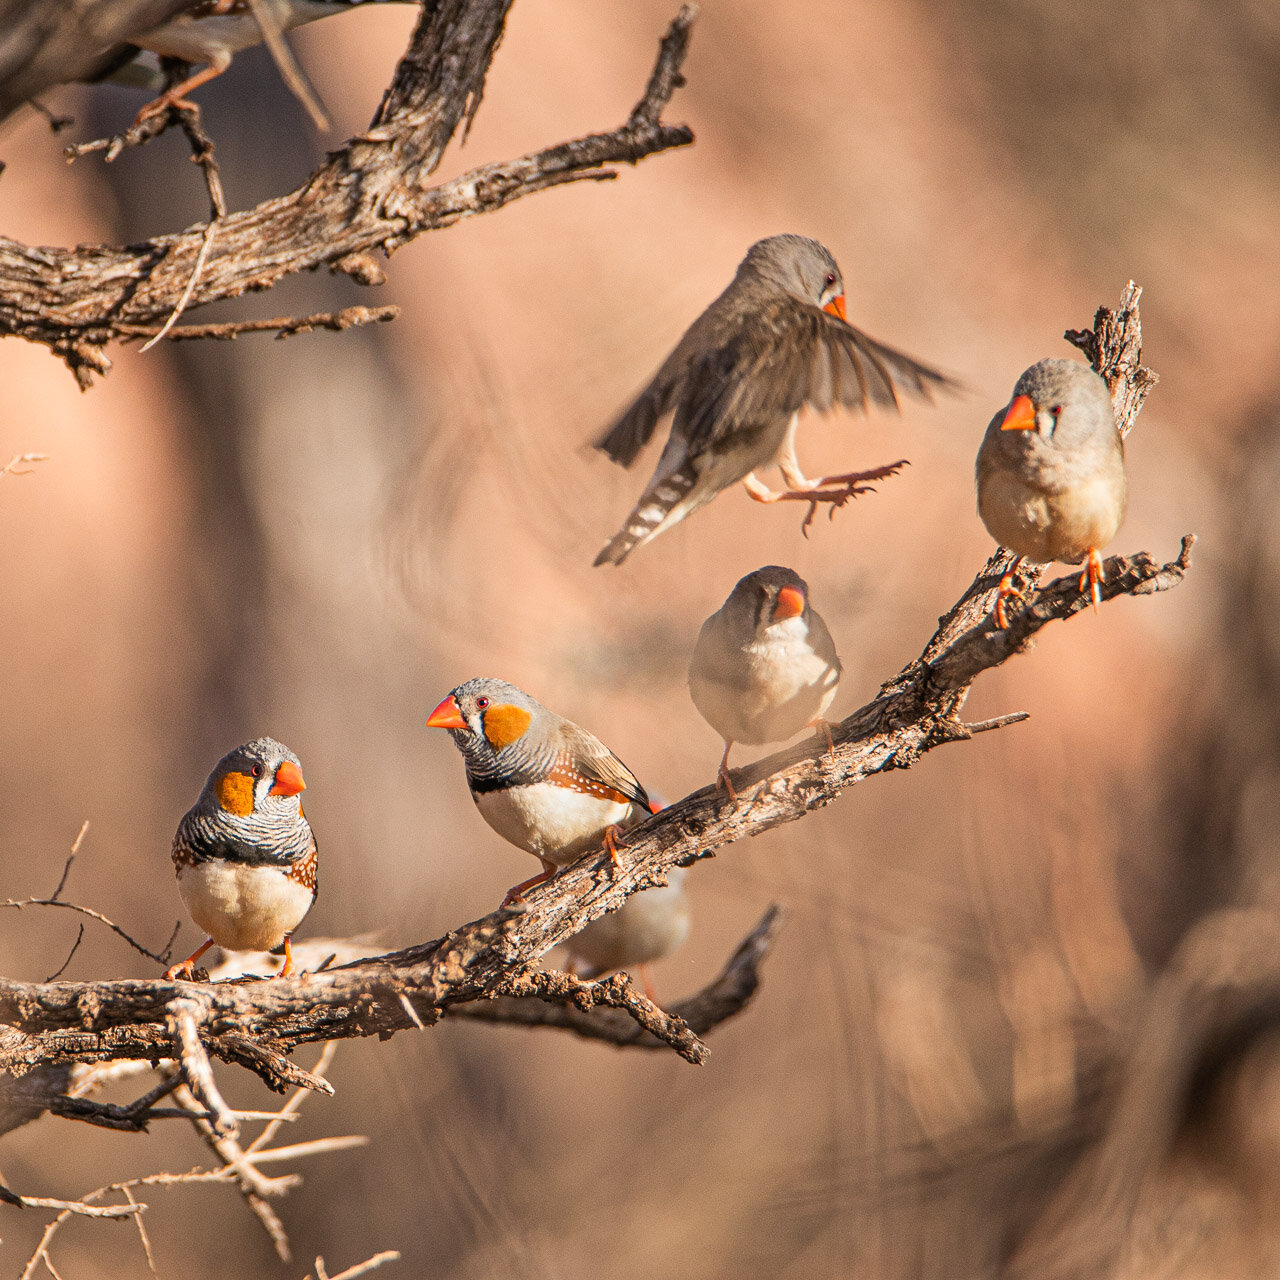 Zebra finch coming in to land in a tree